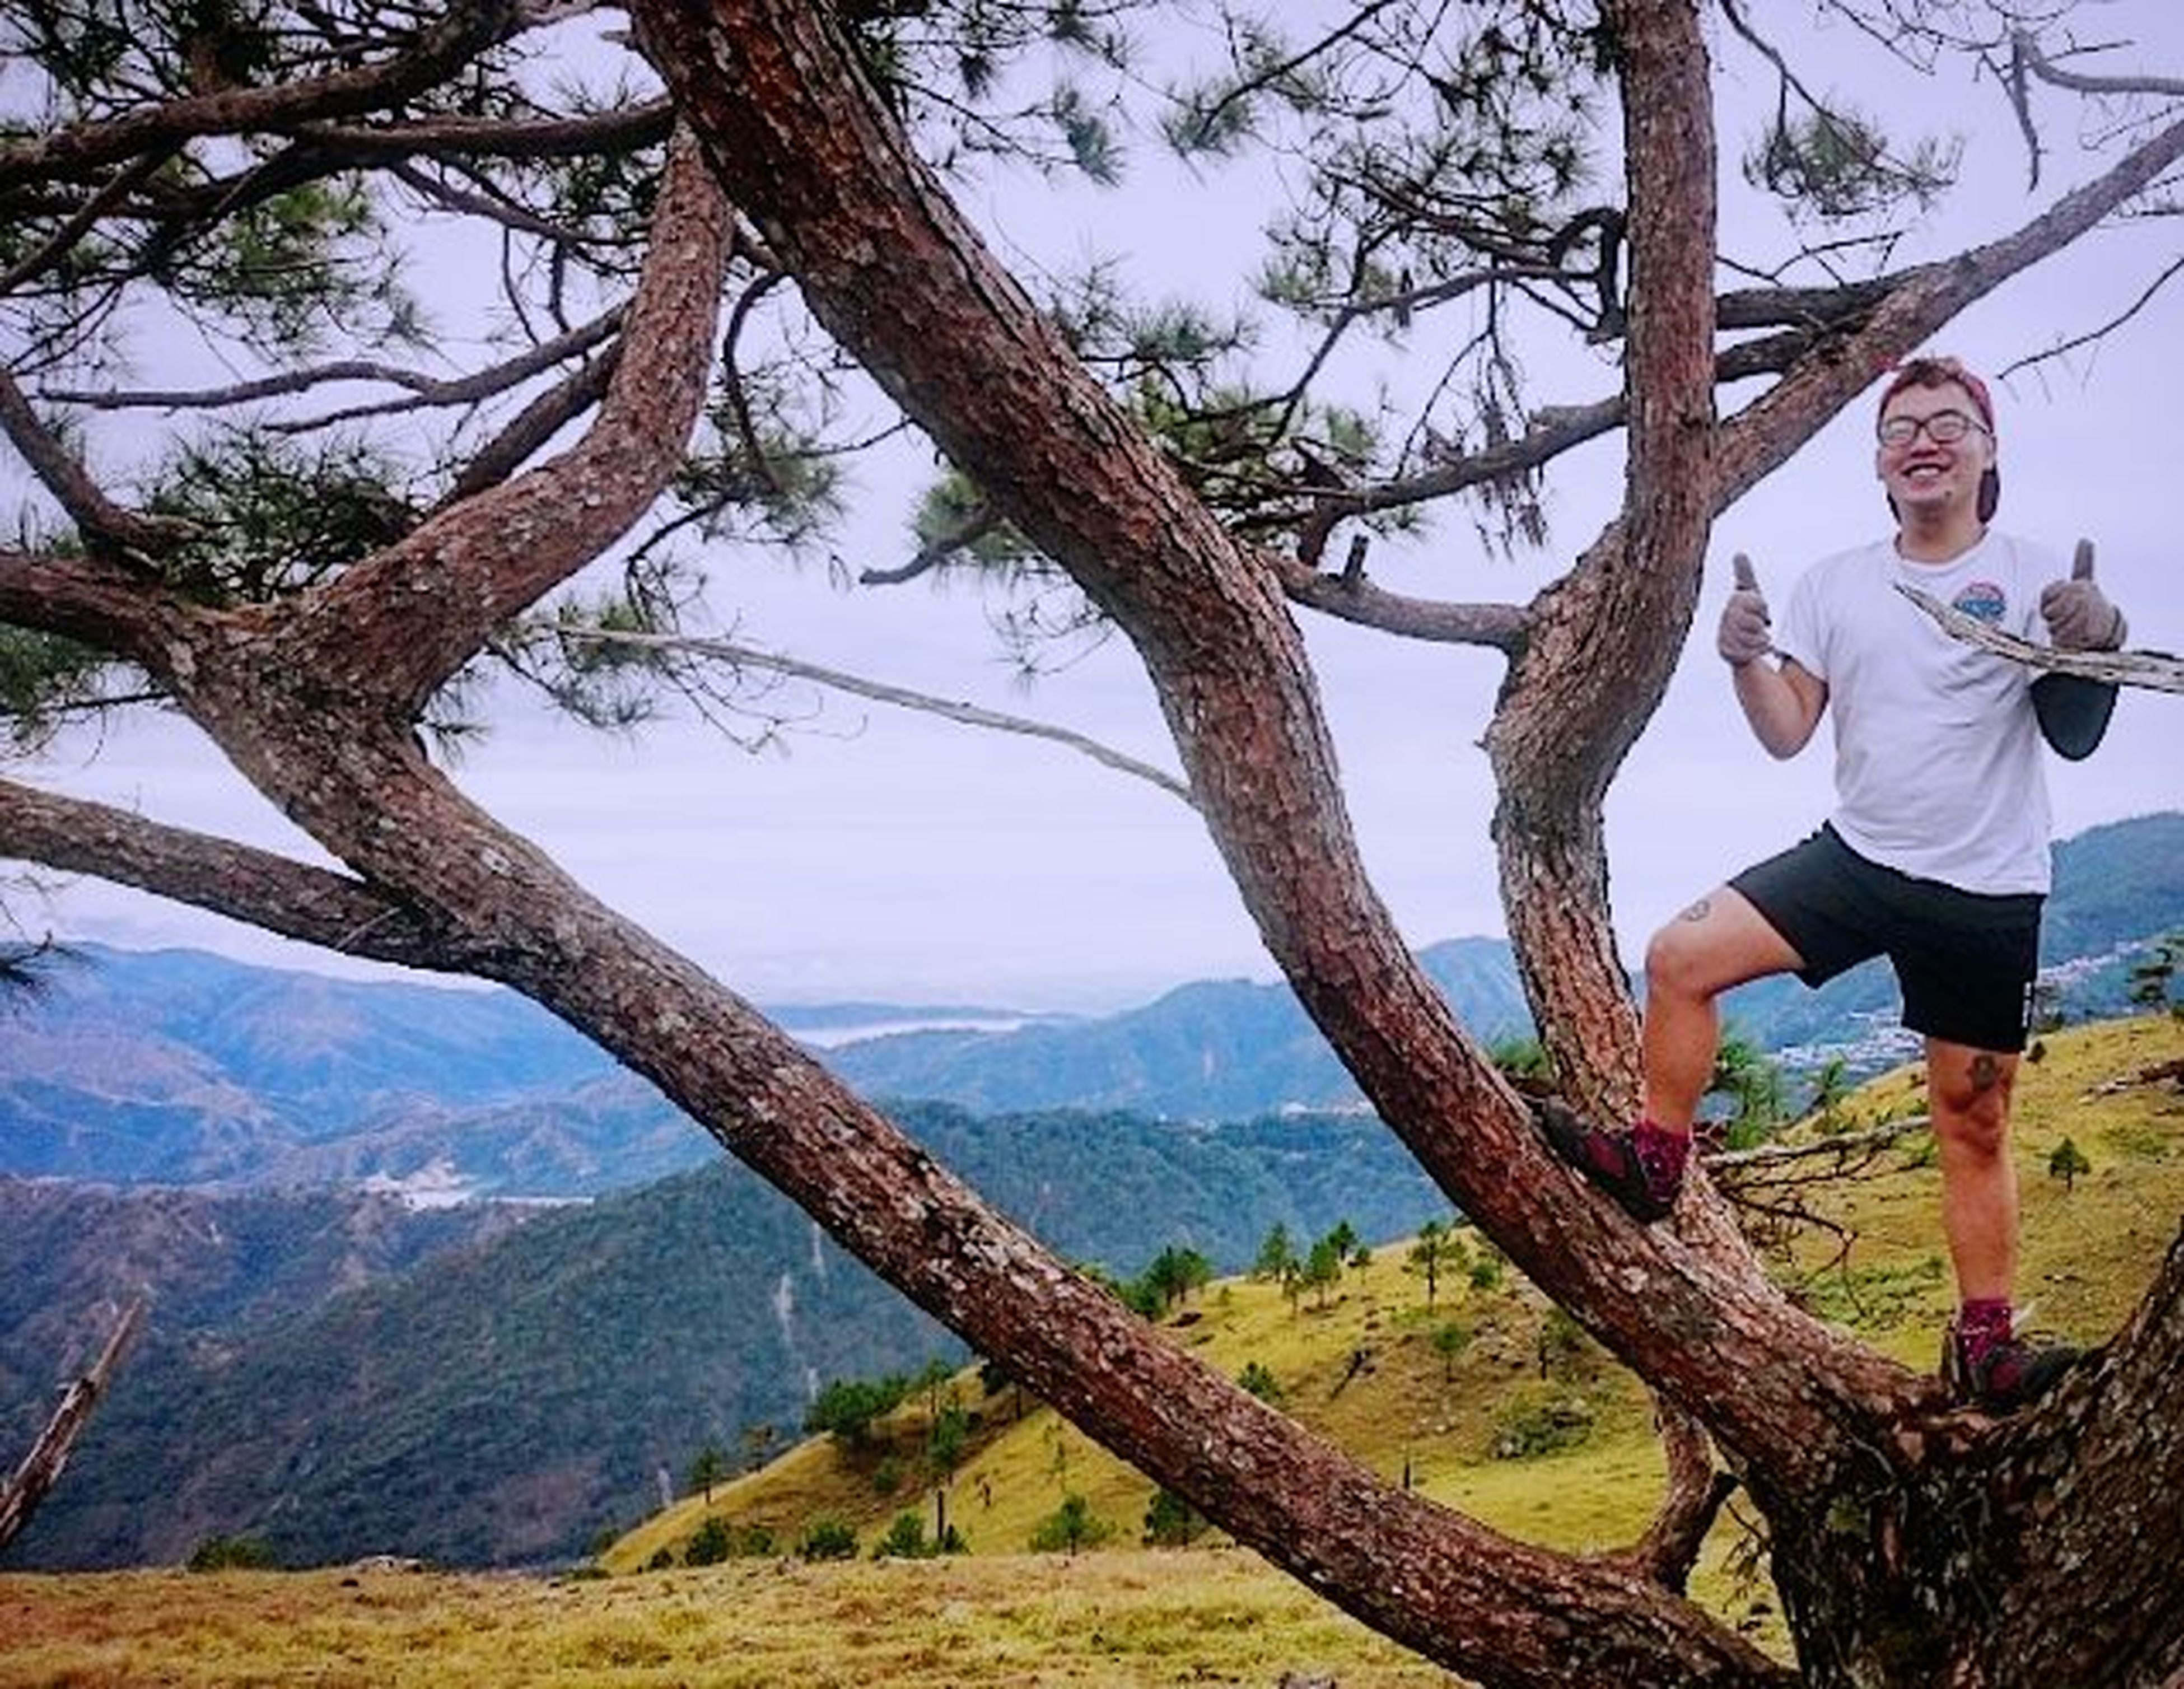 good things in this world come free to us Mtulap Mtulaptraverse Baguiocity Wehike Weclimb Wetrek